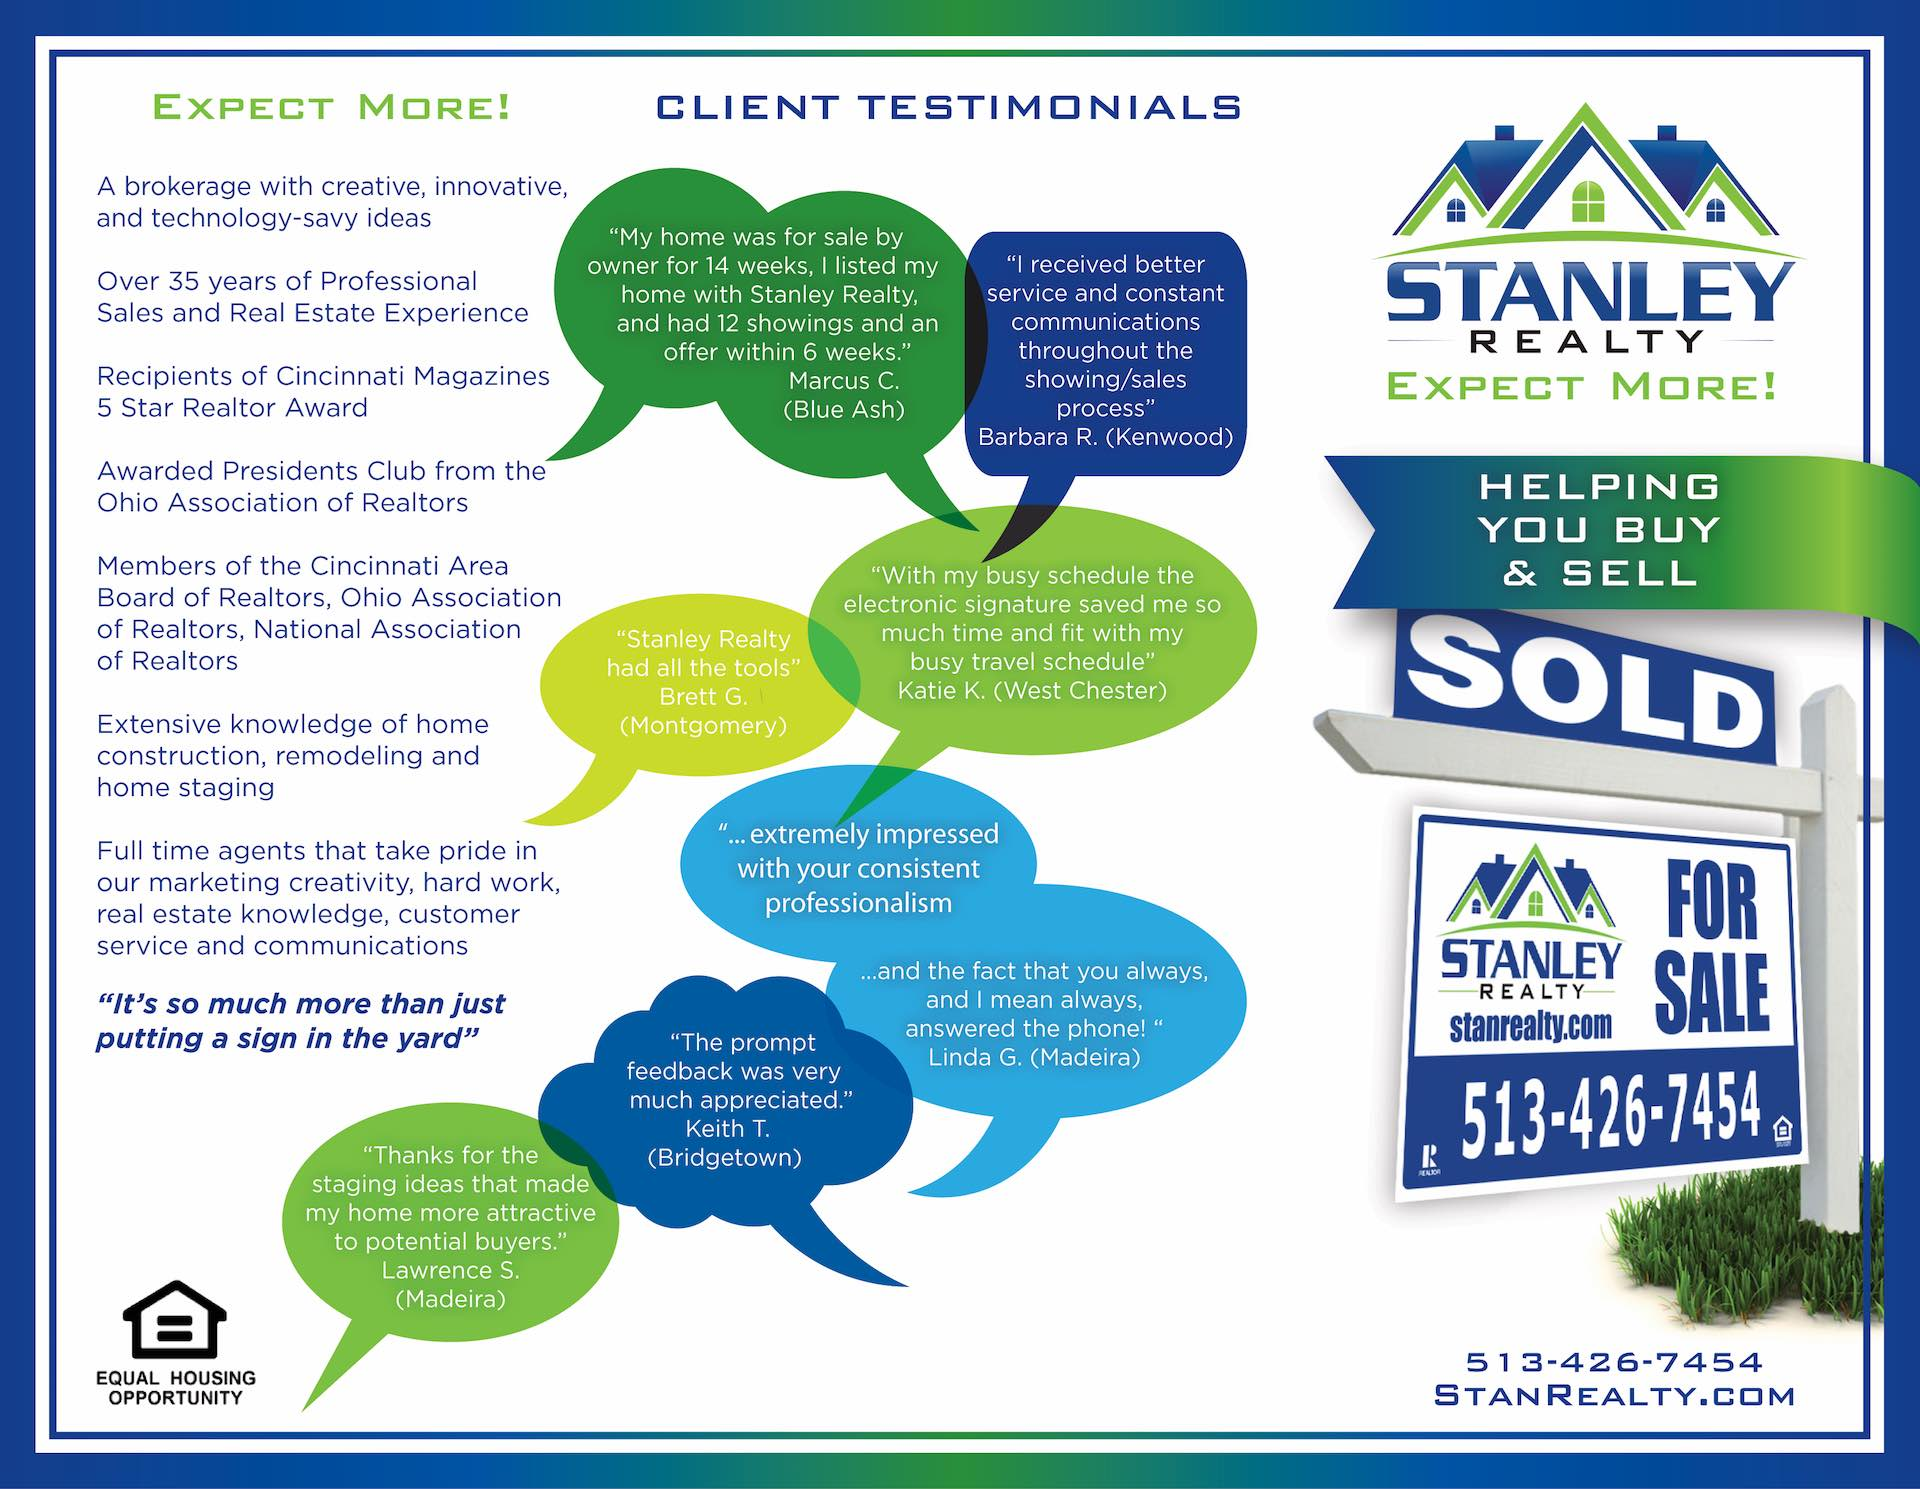 Stanley Realty Testimonials